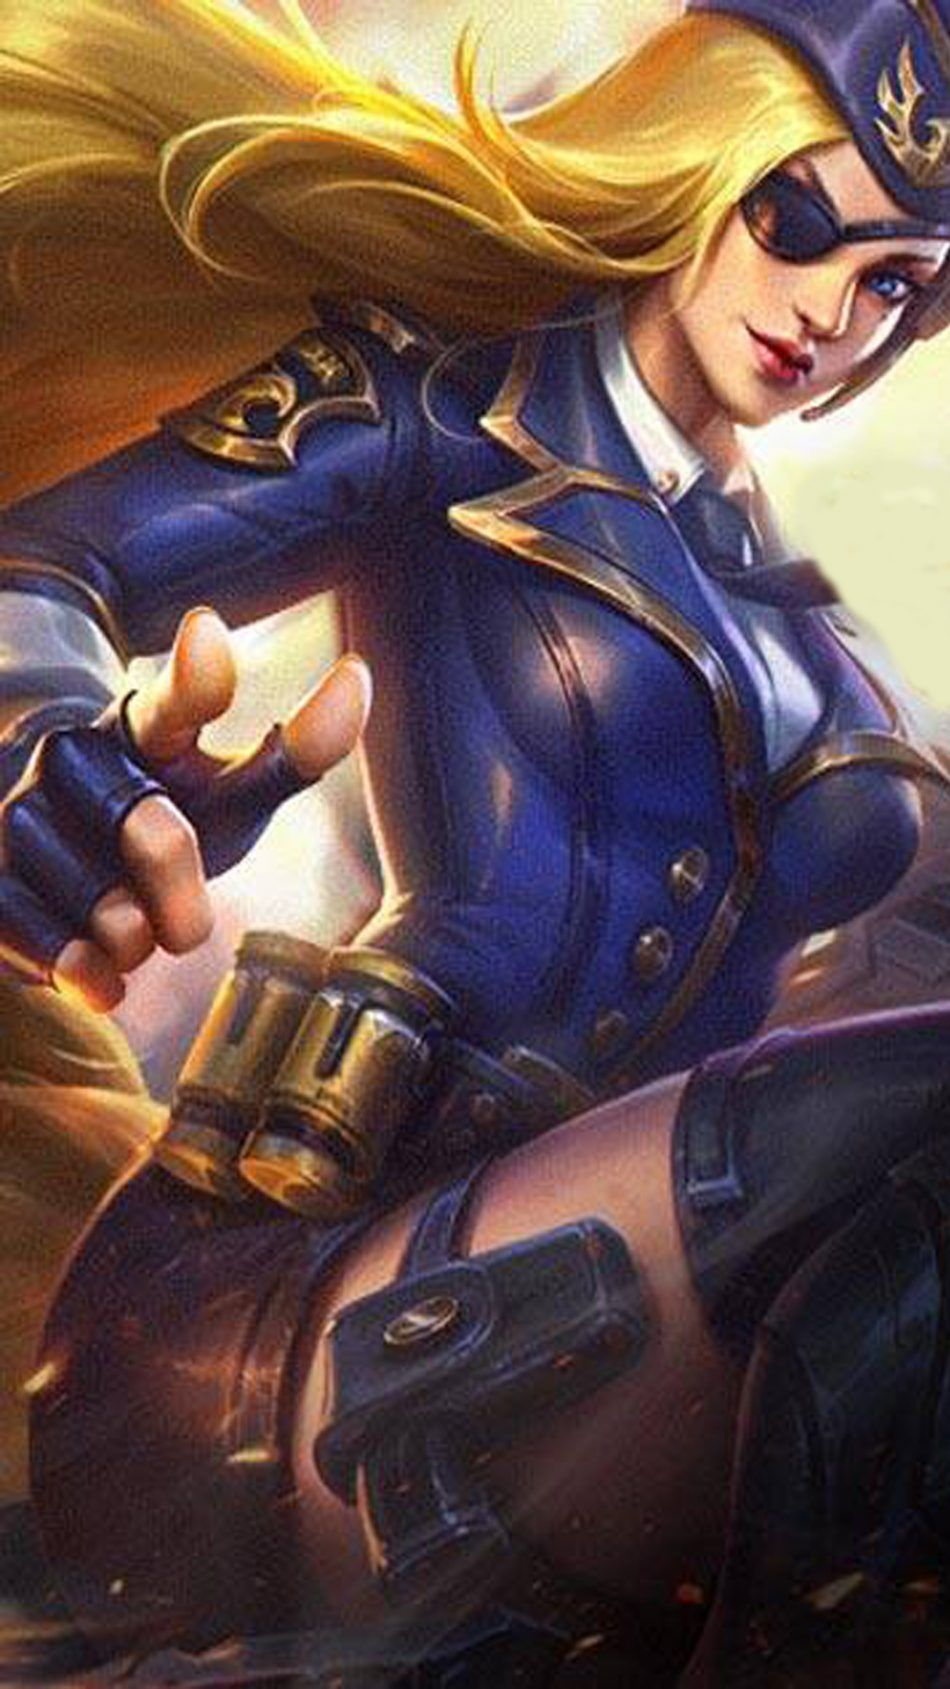 General Rosa Lesley Mobile Legends Maurice Mobile Legends